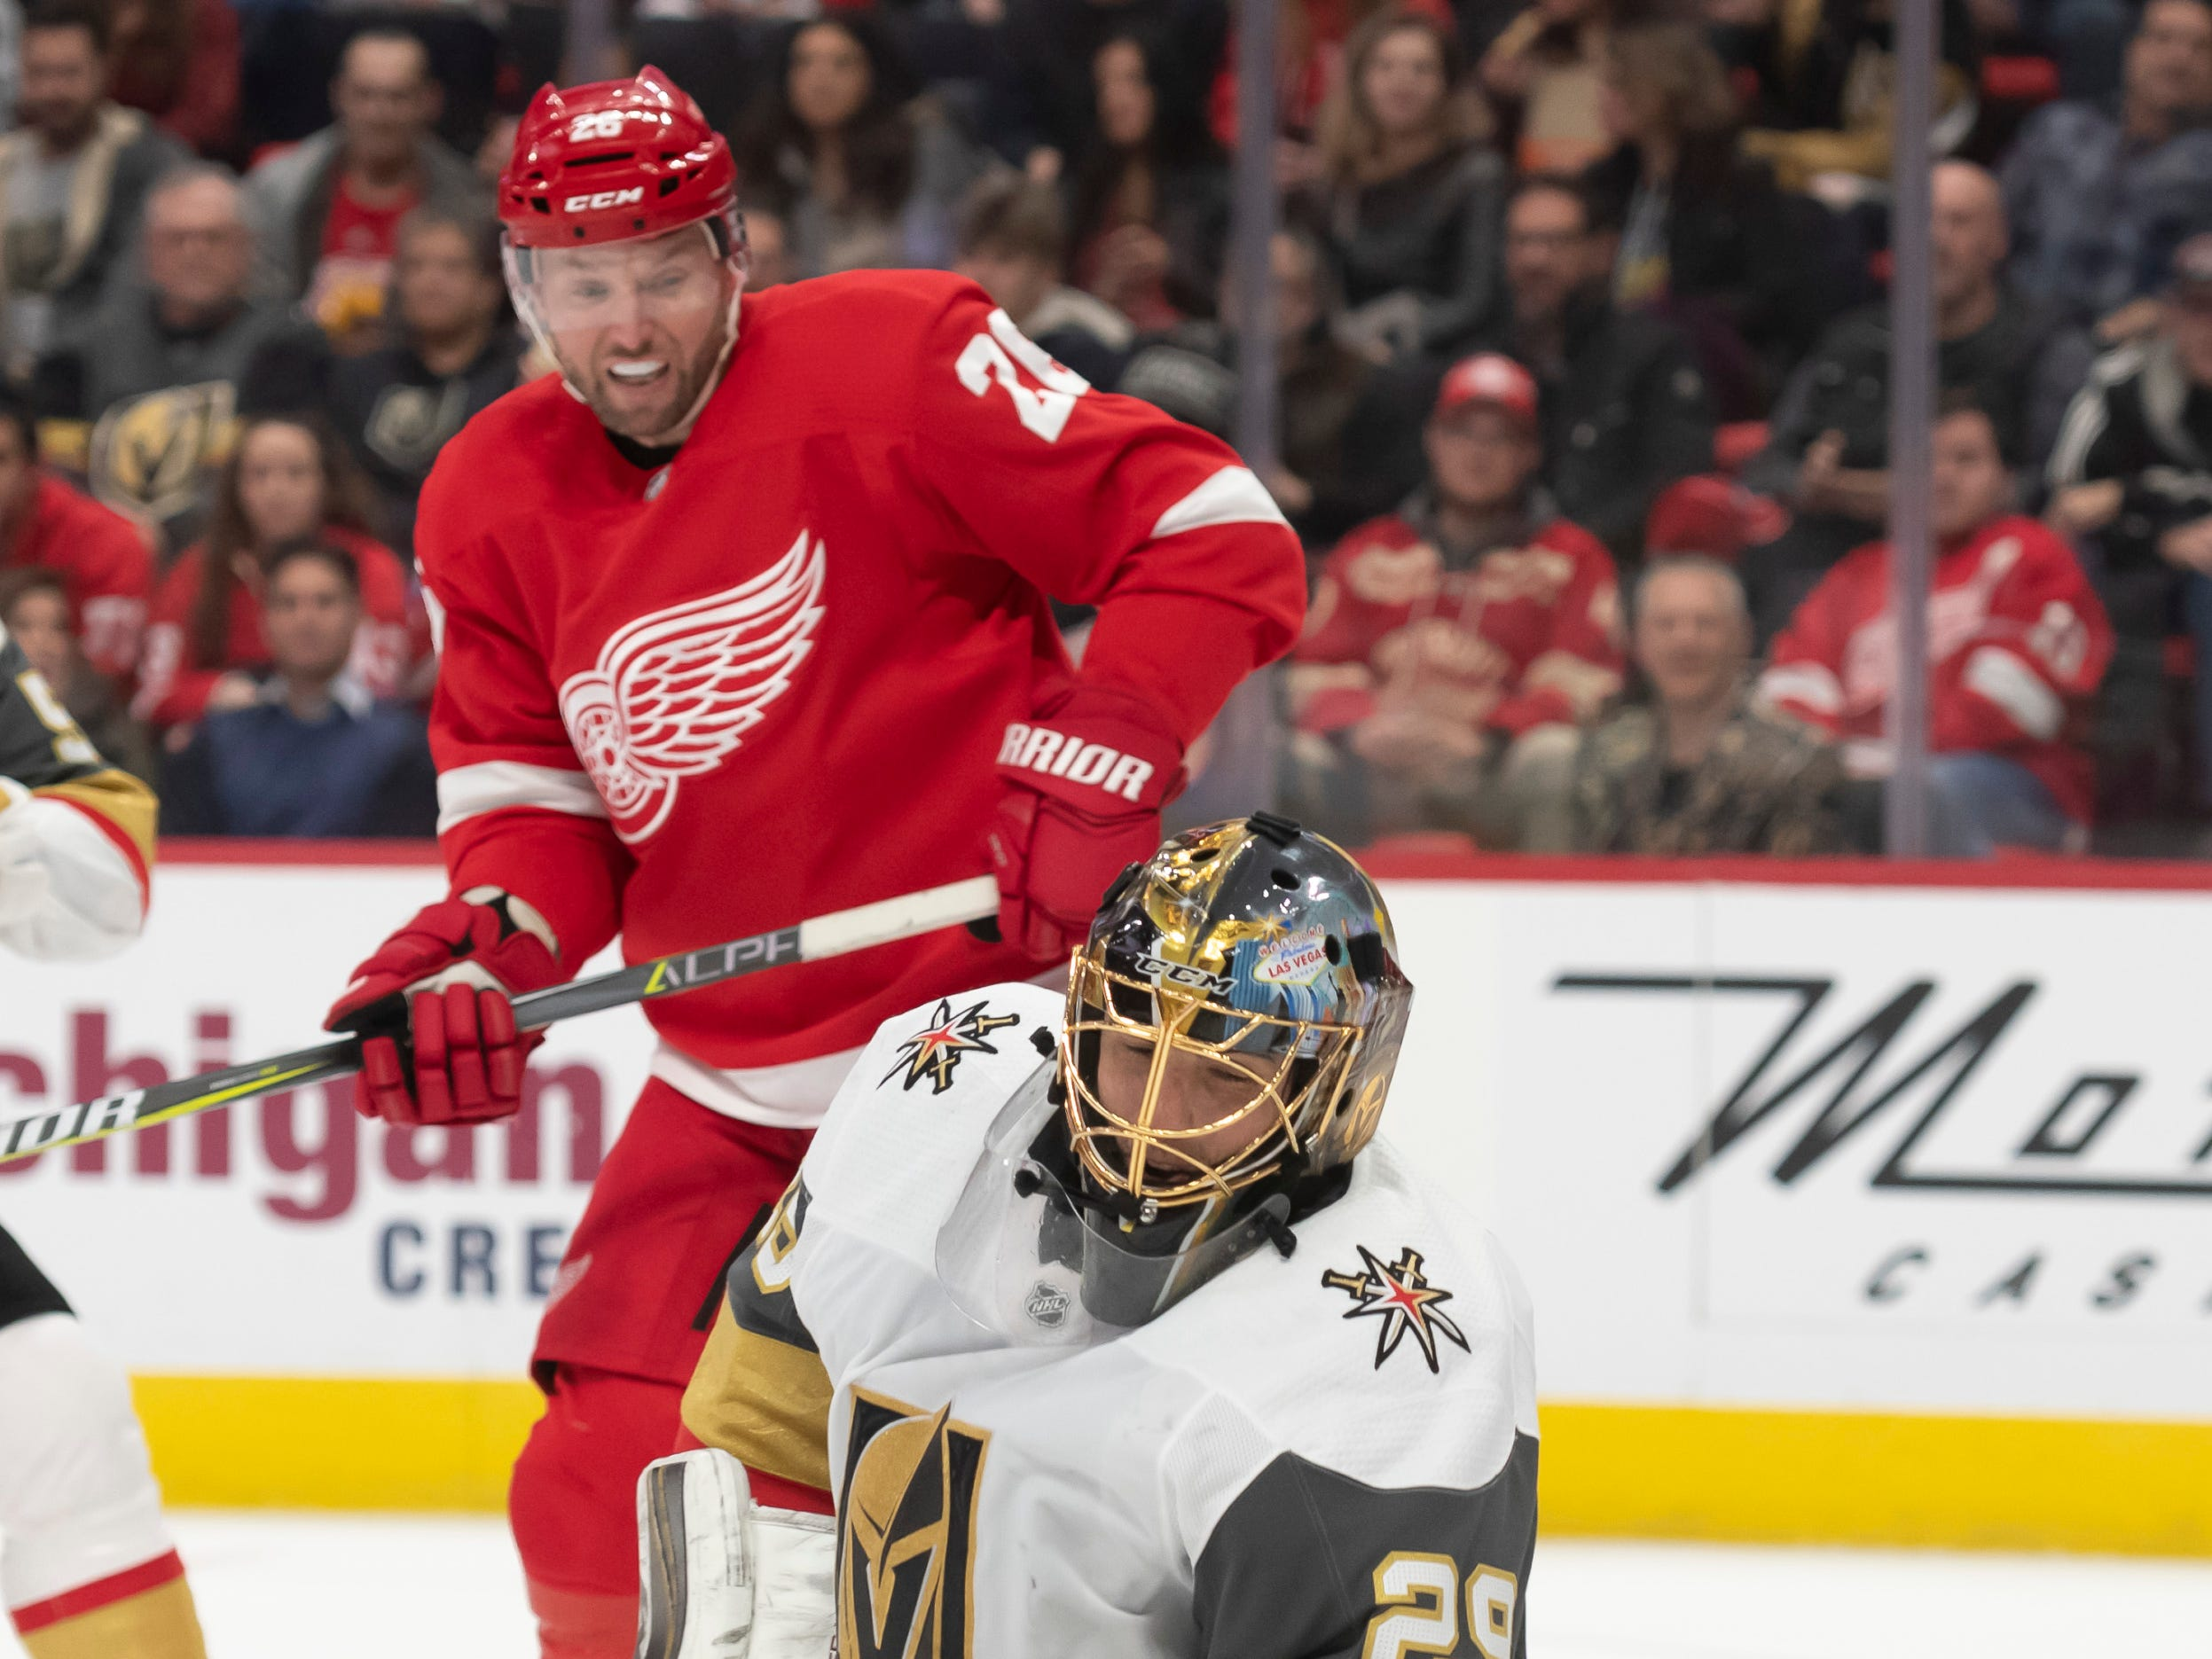 Vegas goaltender Marc-Andre Fleury blocks a shot in front of Detroit left wing Thomas Vanek in the first period.